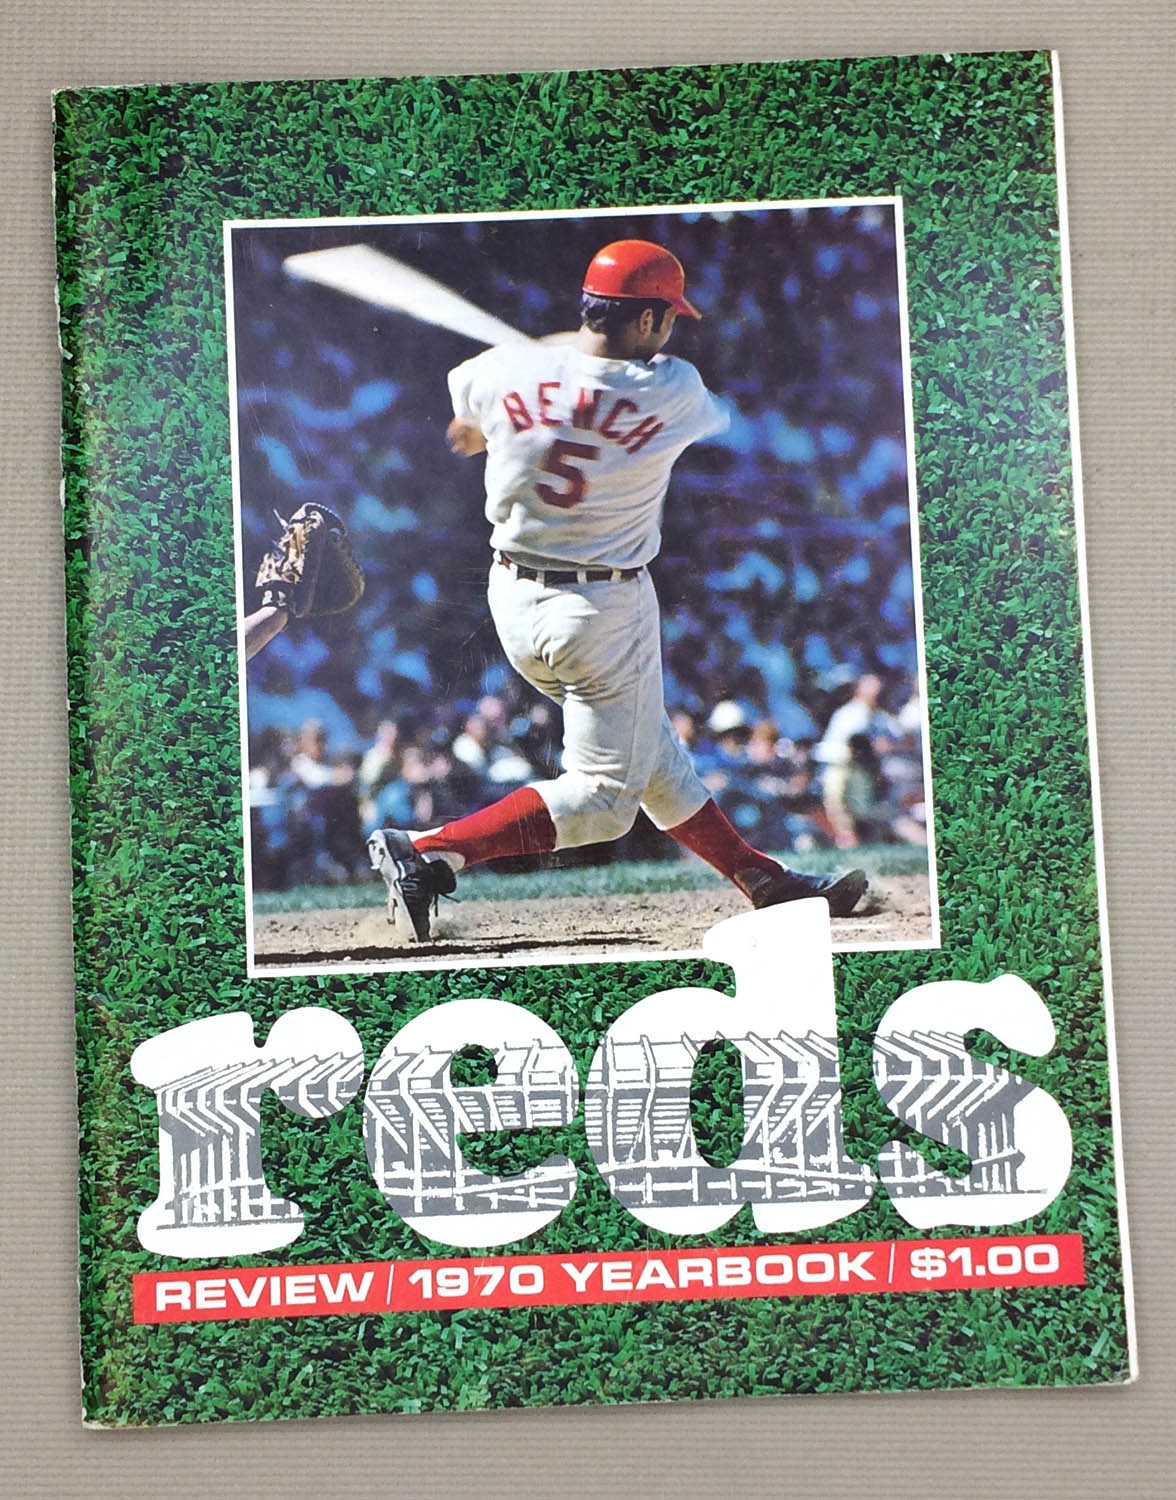 Cincinnati Reds 1970 Yearbook